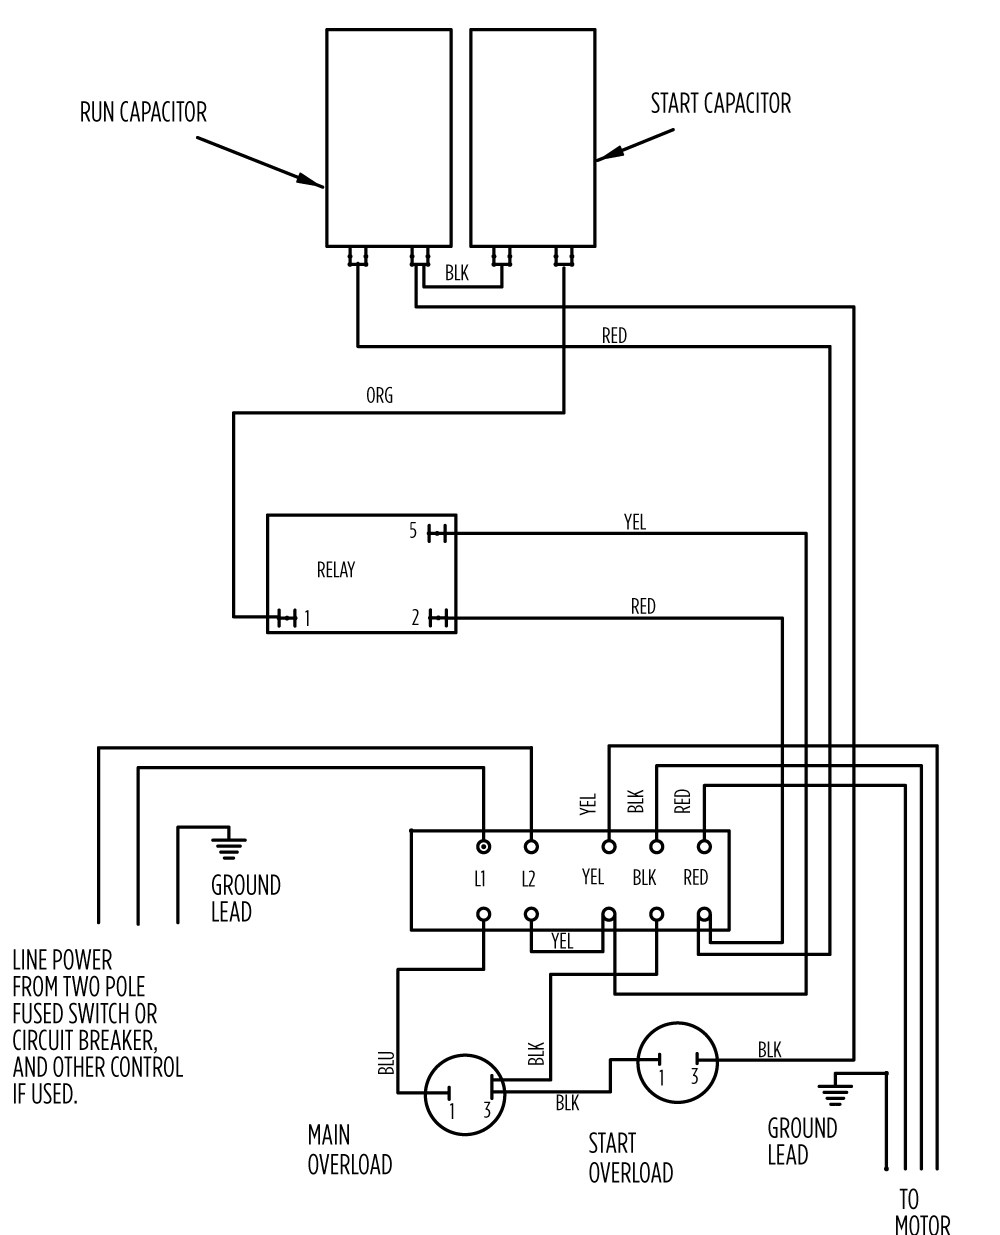 Three Pump Diagram Archive Of Automotive Wiring Roper Dryer Red4440vq1 Aim Manual Page 55 Single Phase Motors And Controls Motor Rh Franklinwater Com